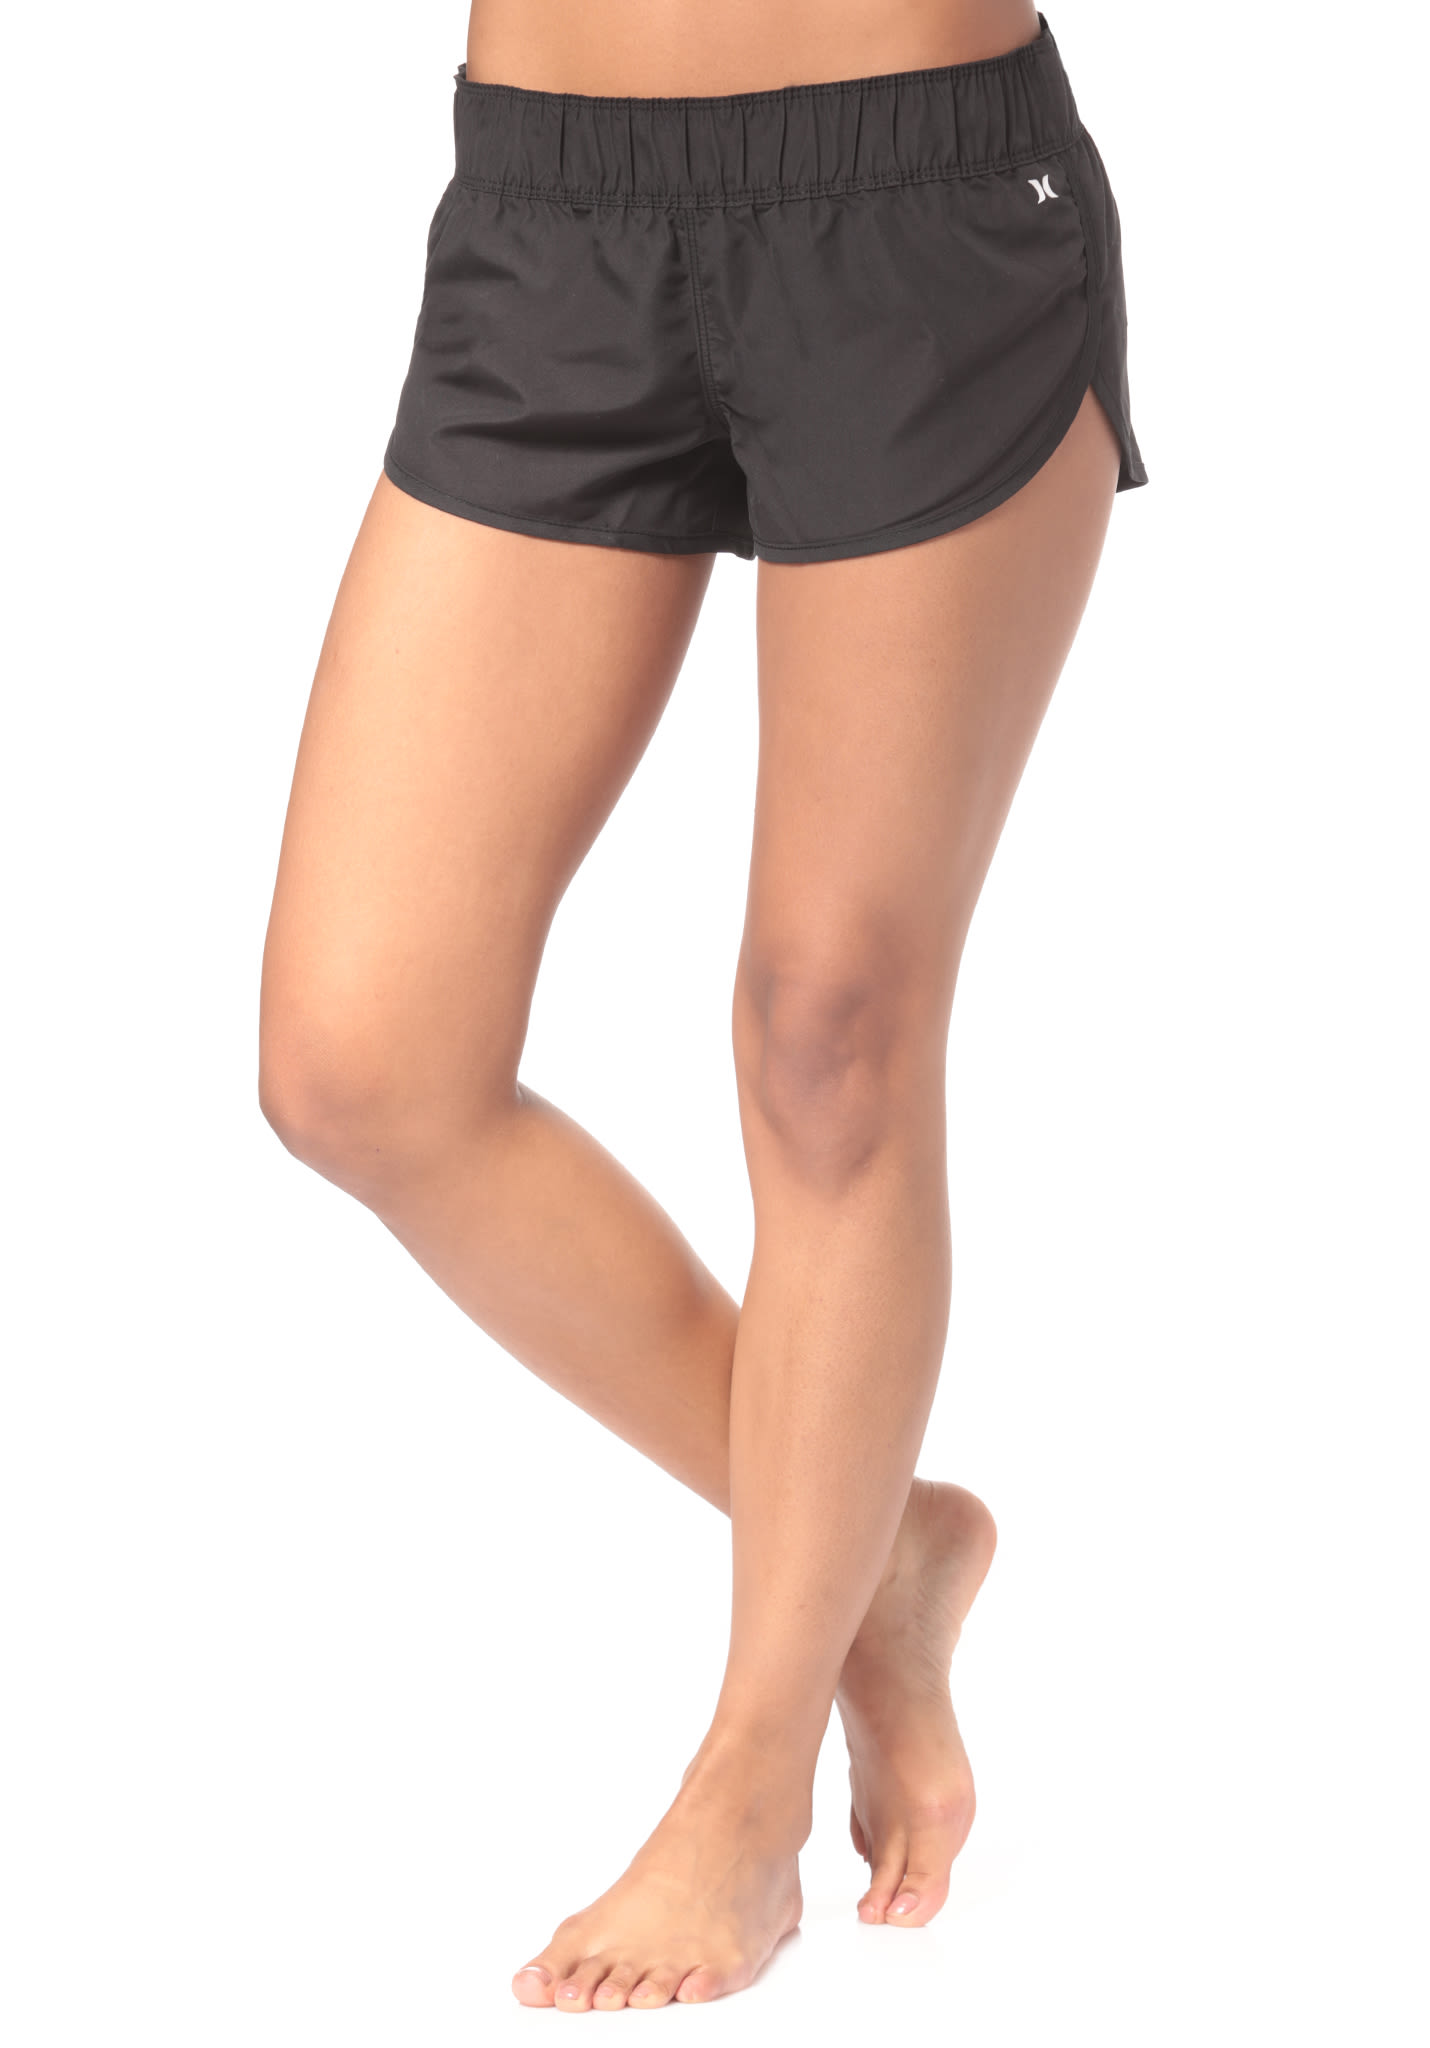 Hurley Supersuede Beachrider - Boardshorts for Women - Black - Planet Sports bffa803af